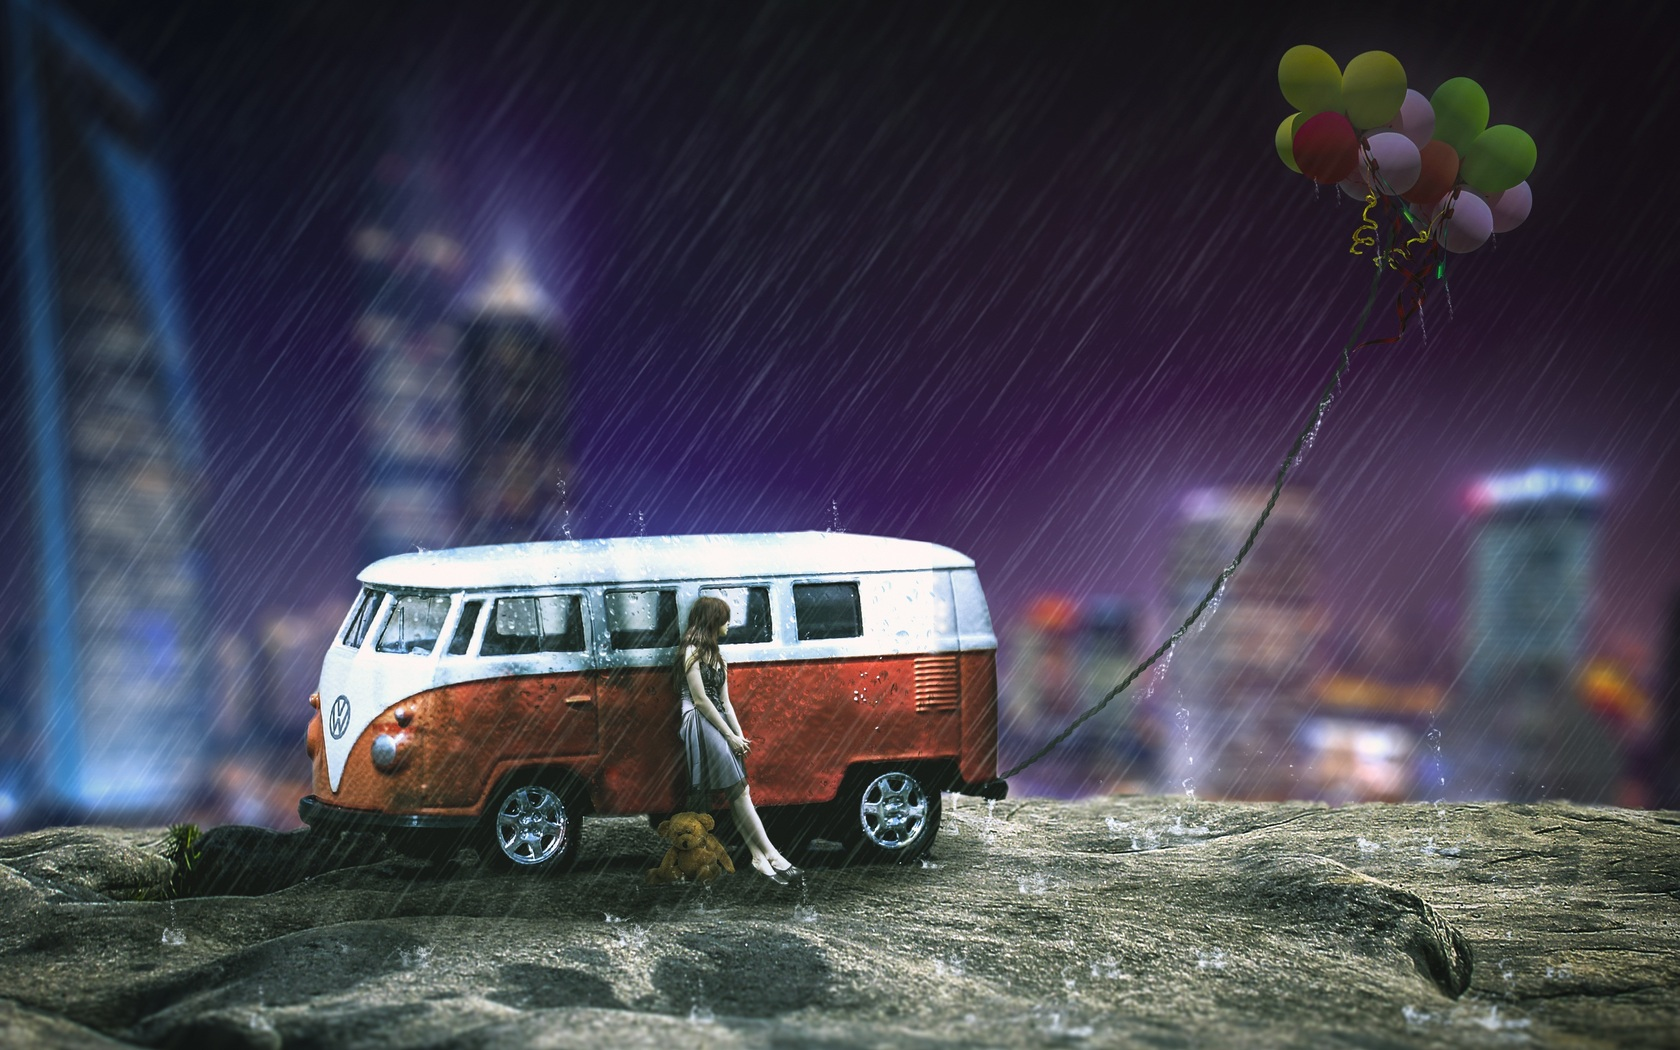 girl-volkswagen-teddy-bear-balloon-city-fantasy-artwork-qb.jpg